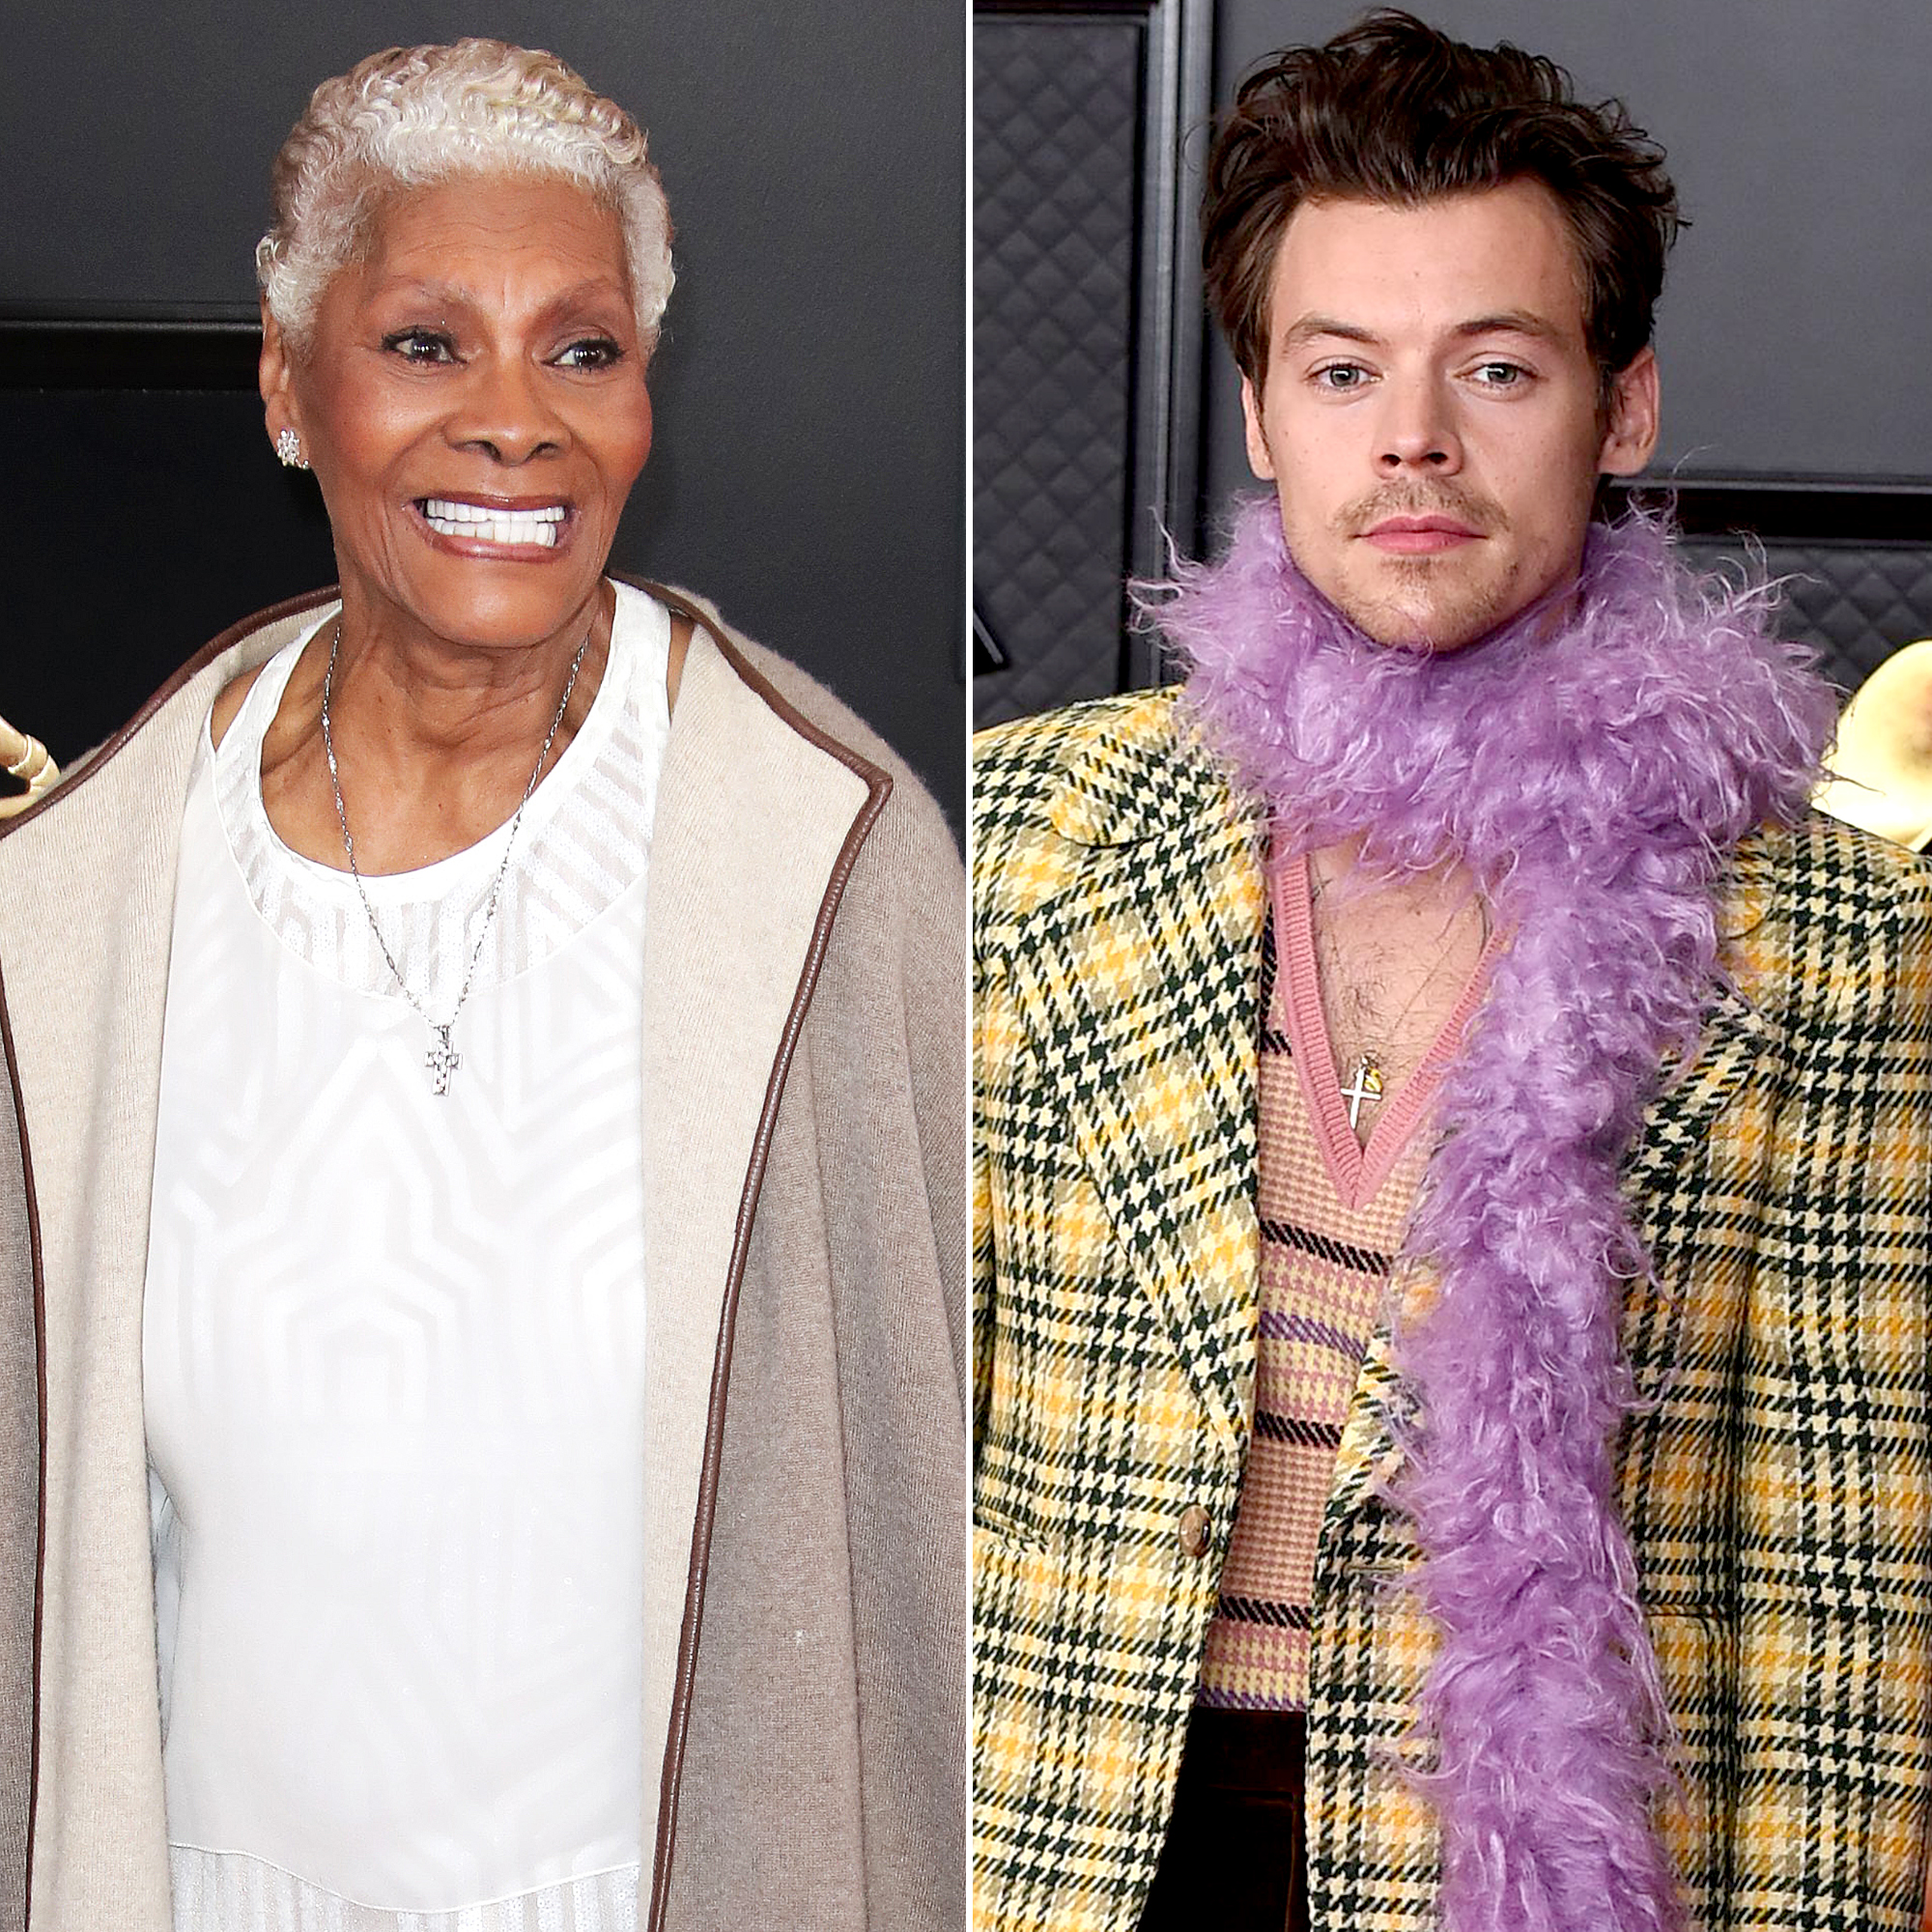 Dionne Warwick Hilariously Learns What Watermelon Sugar Means at 2021 Grammys